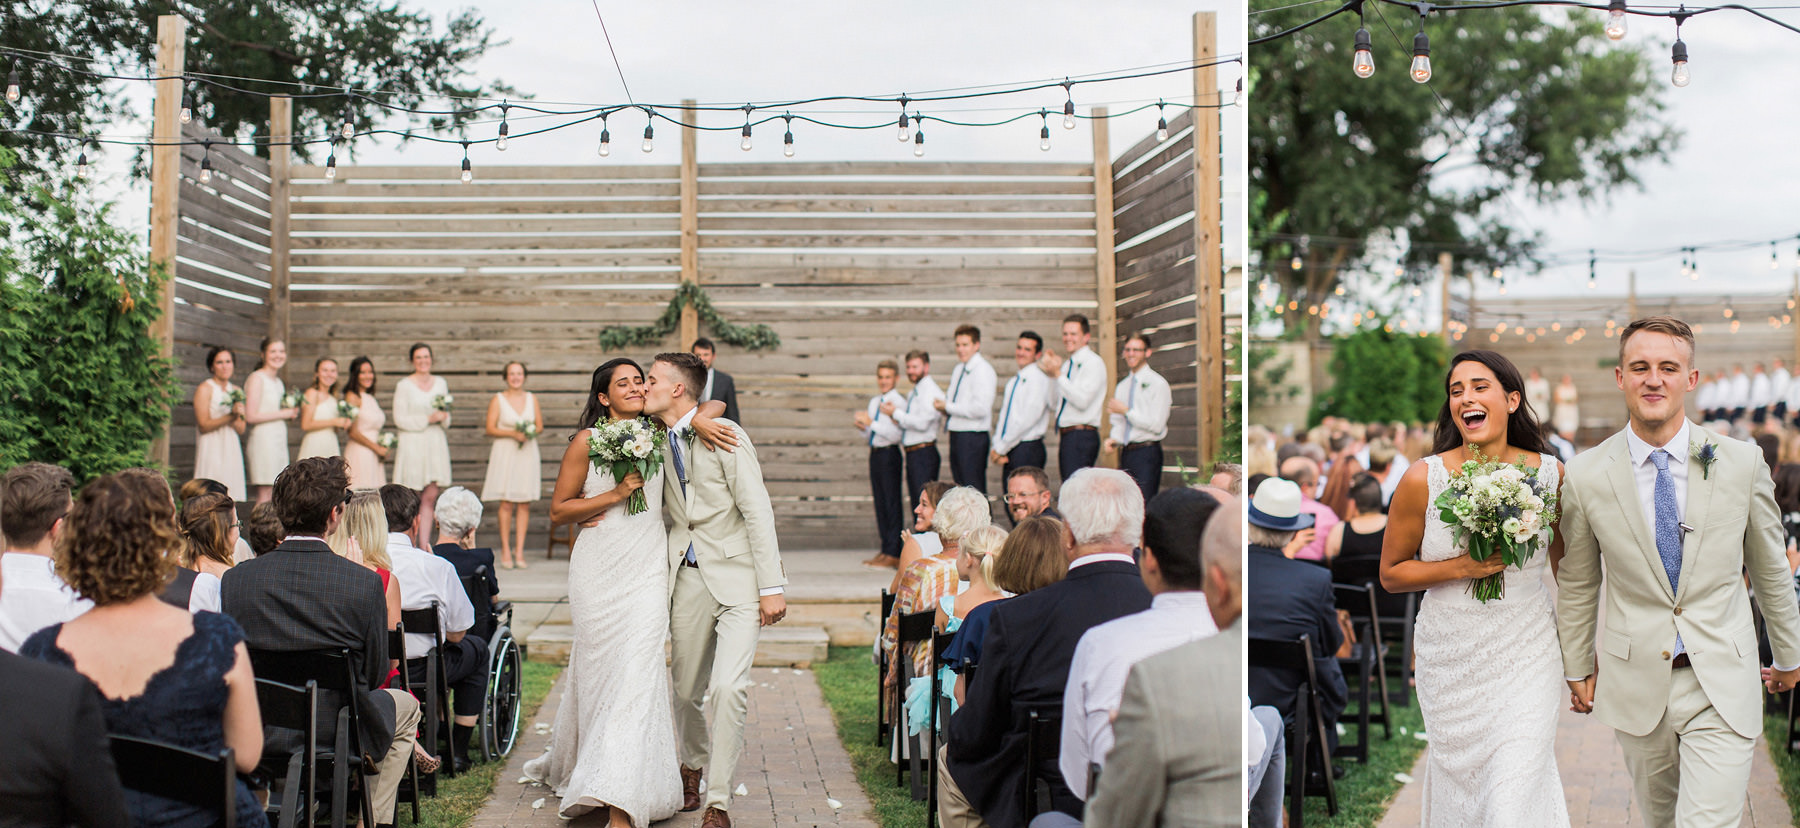 258_The Guild Outdoor Wedding Kansas City, Missouri_Kindling Wedding Photography.JPG